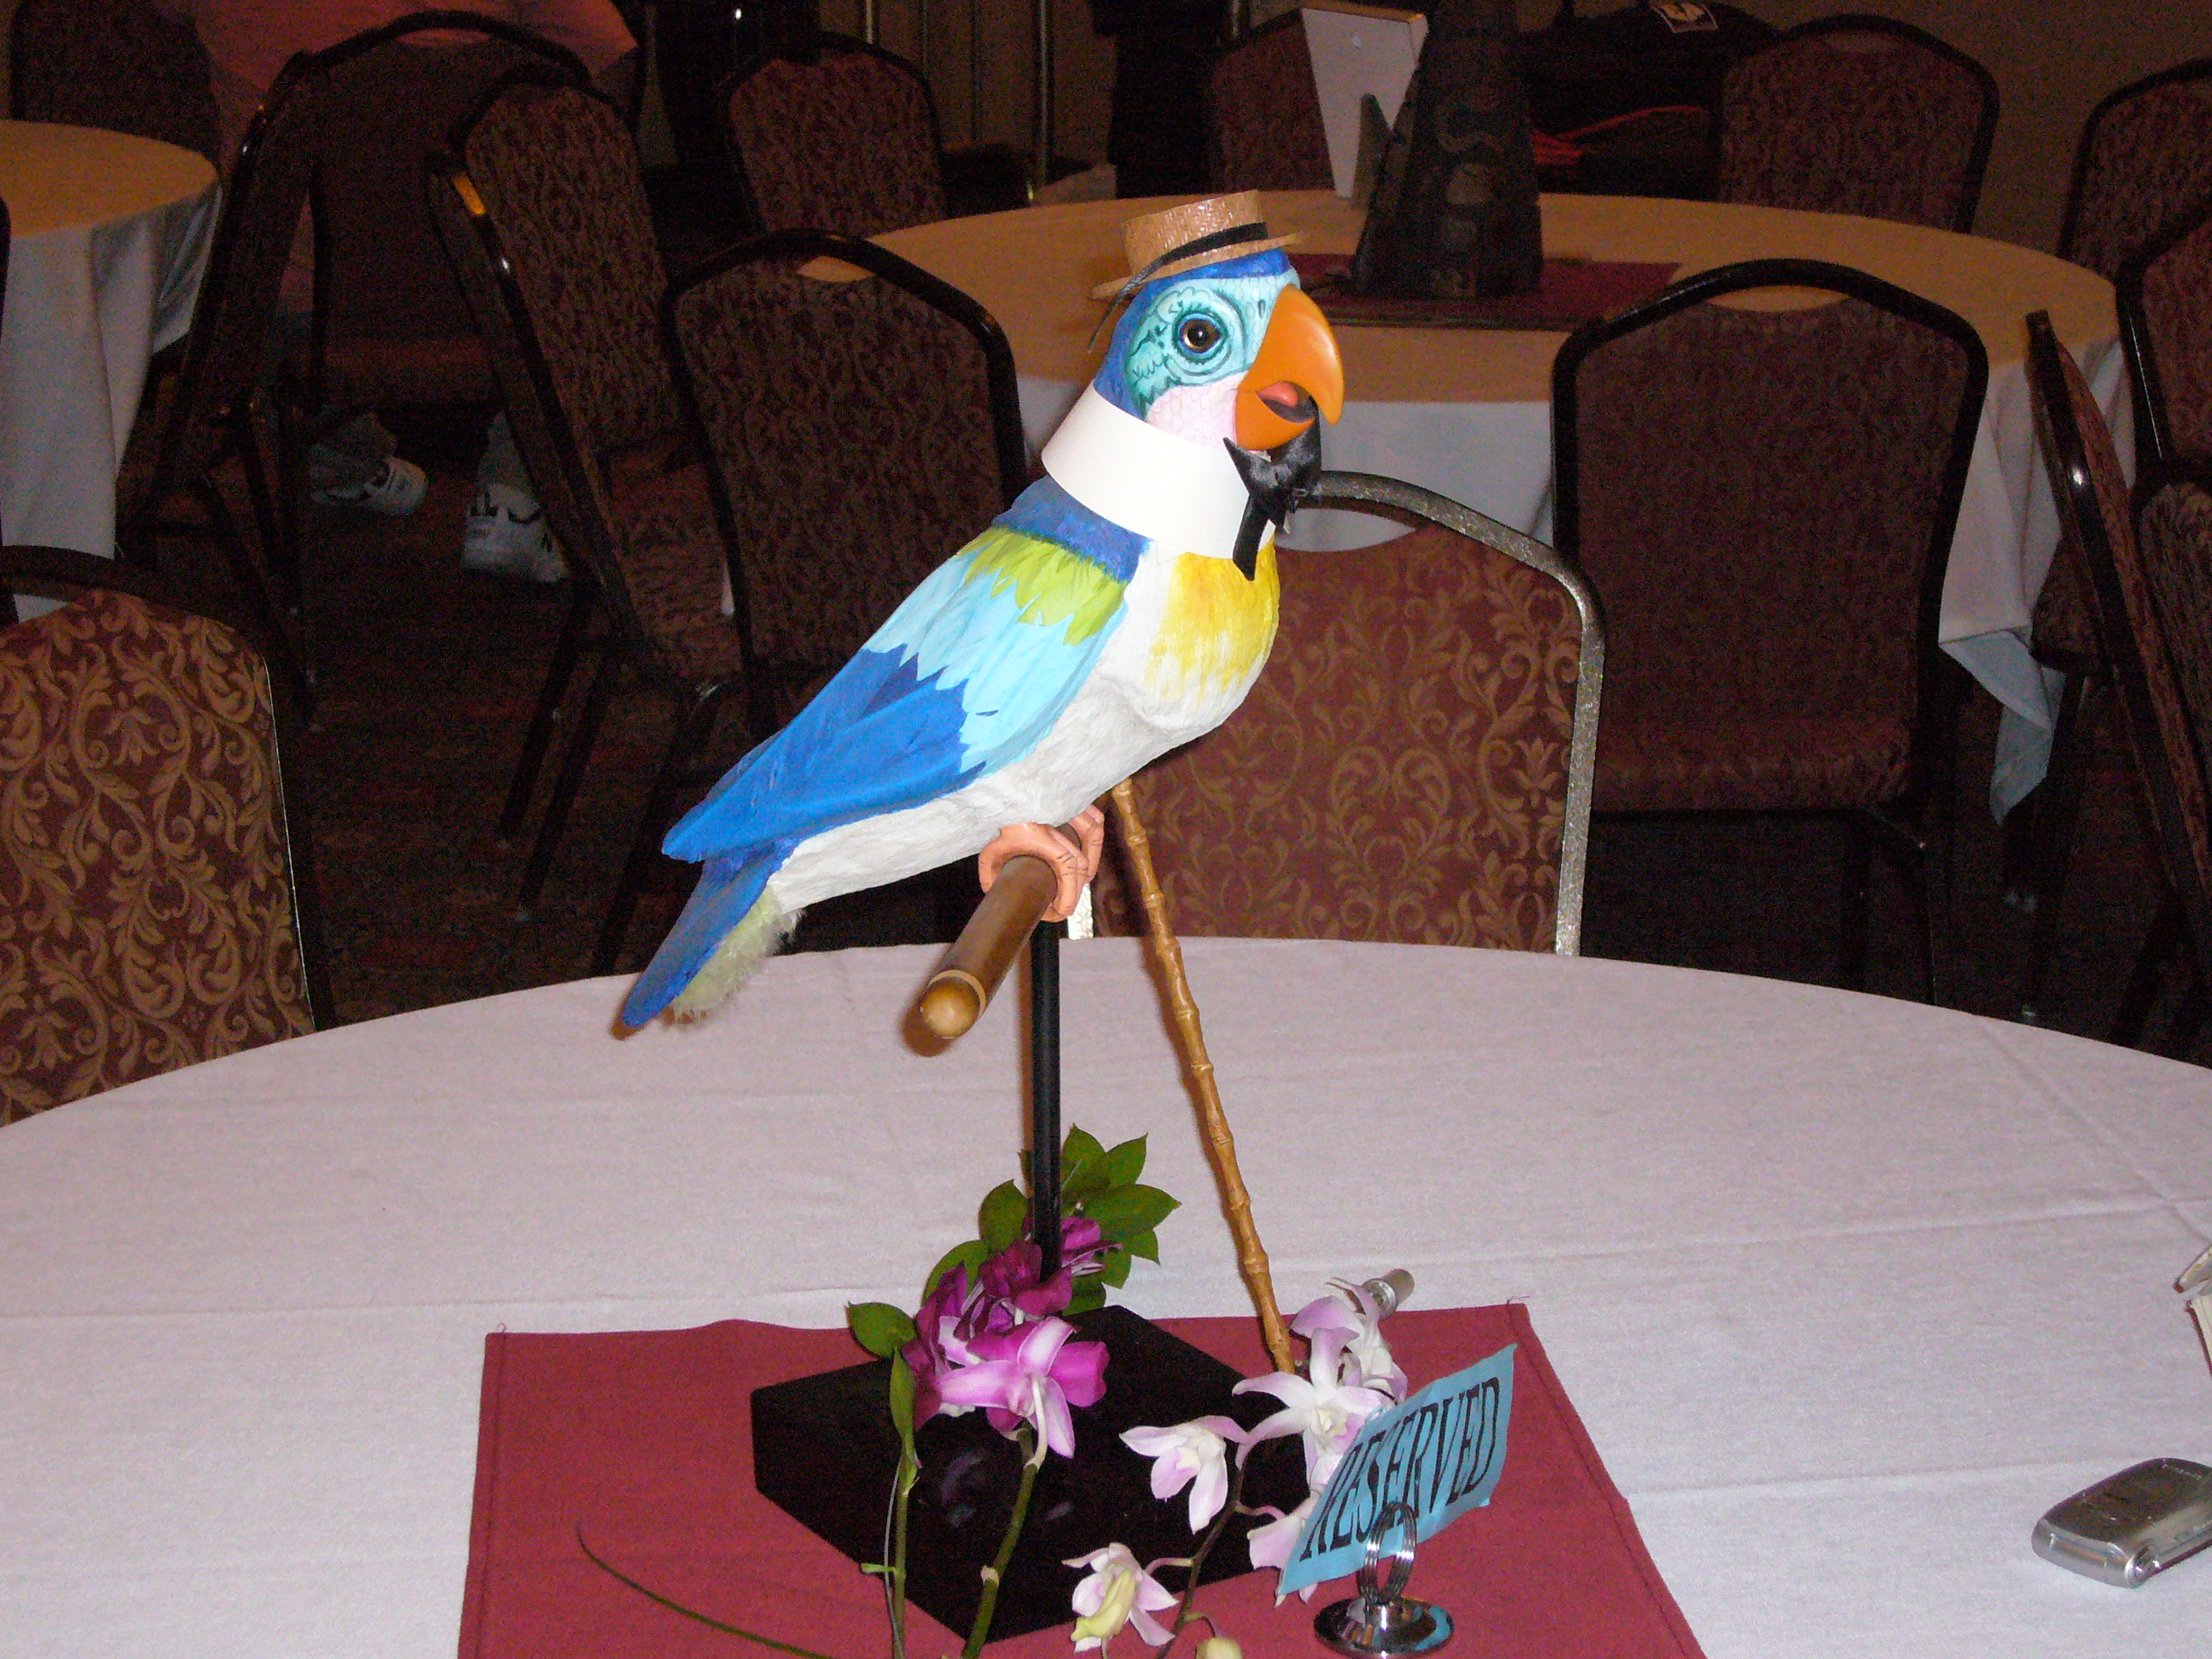 Tiki Bird at Golden Horseshoe Event